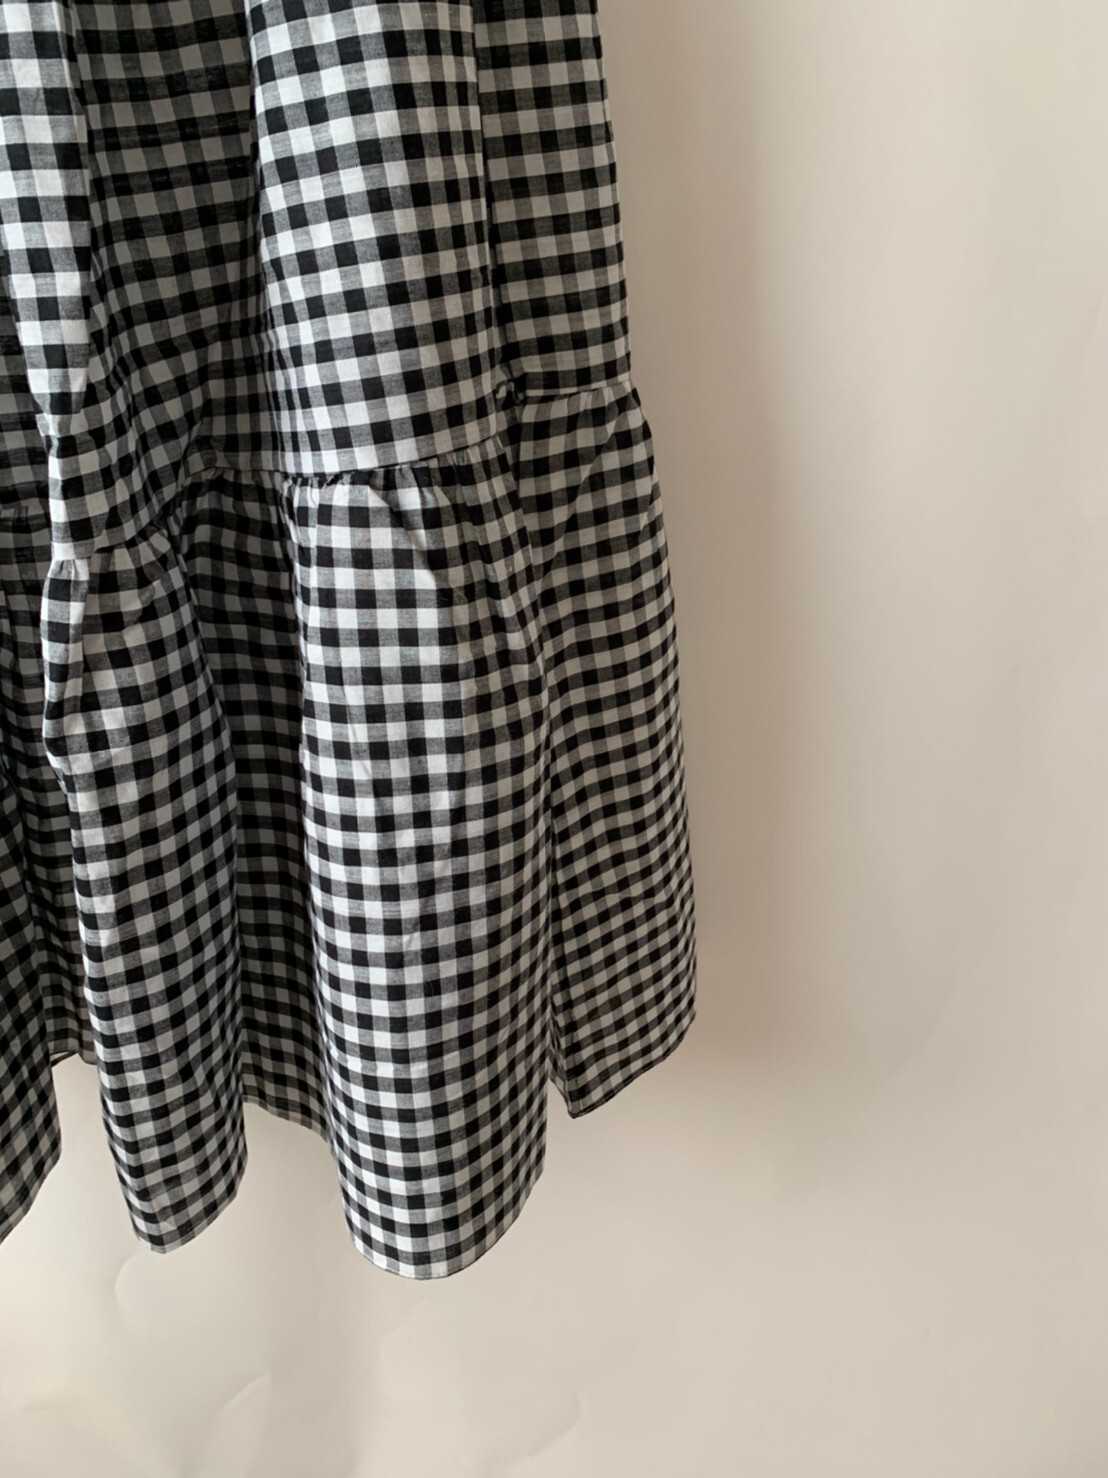 【asyu】gingham check tiered skirt